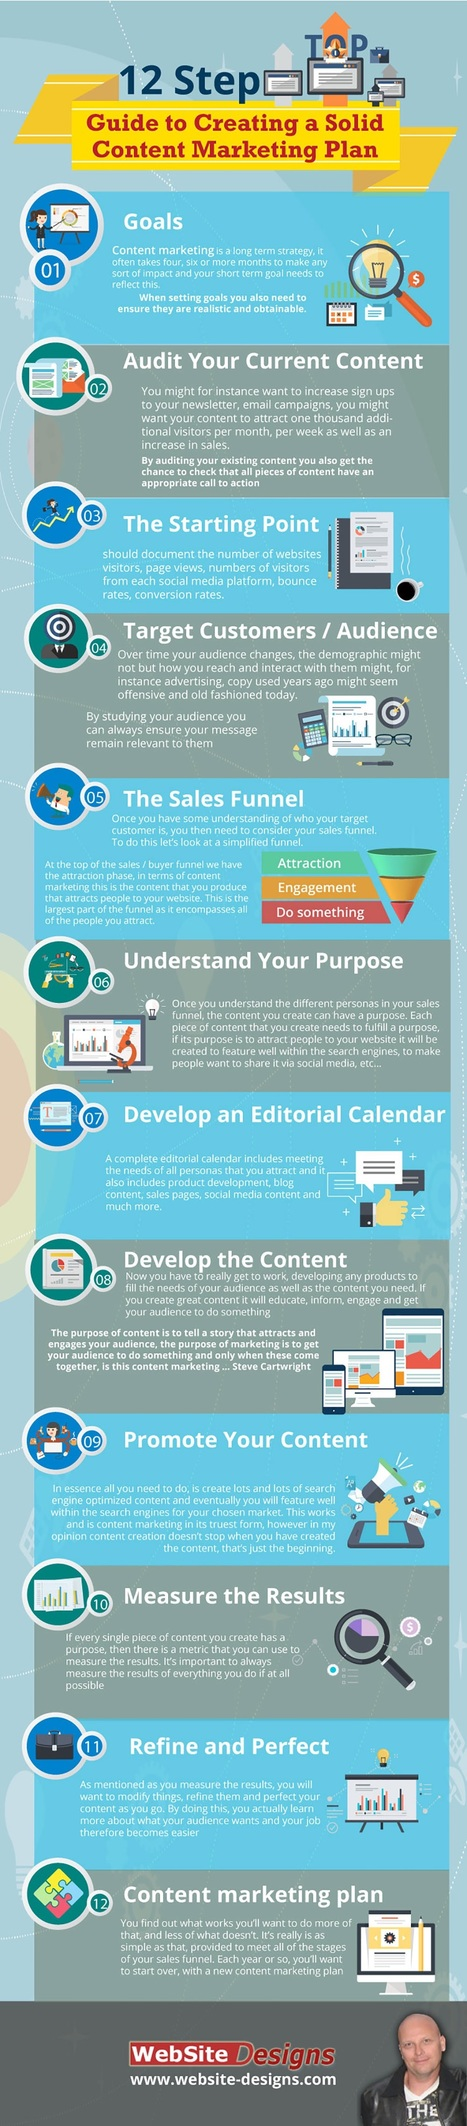 How To Create a Solid Content Marketing Plan #infographic | СписаниеТО Интернет Маркетинг | Scoop.it